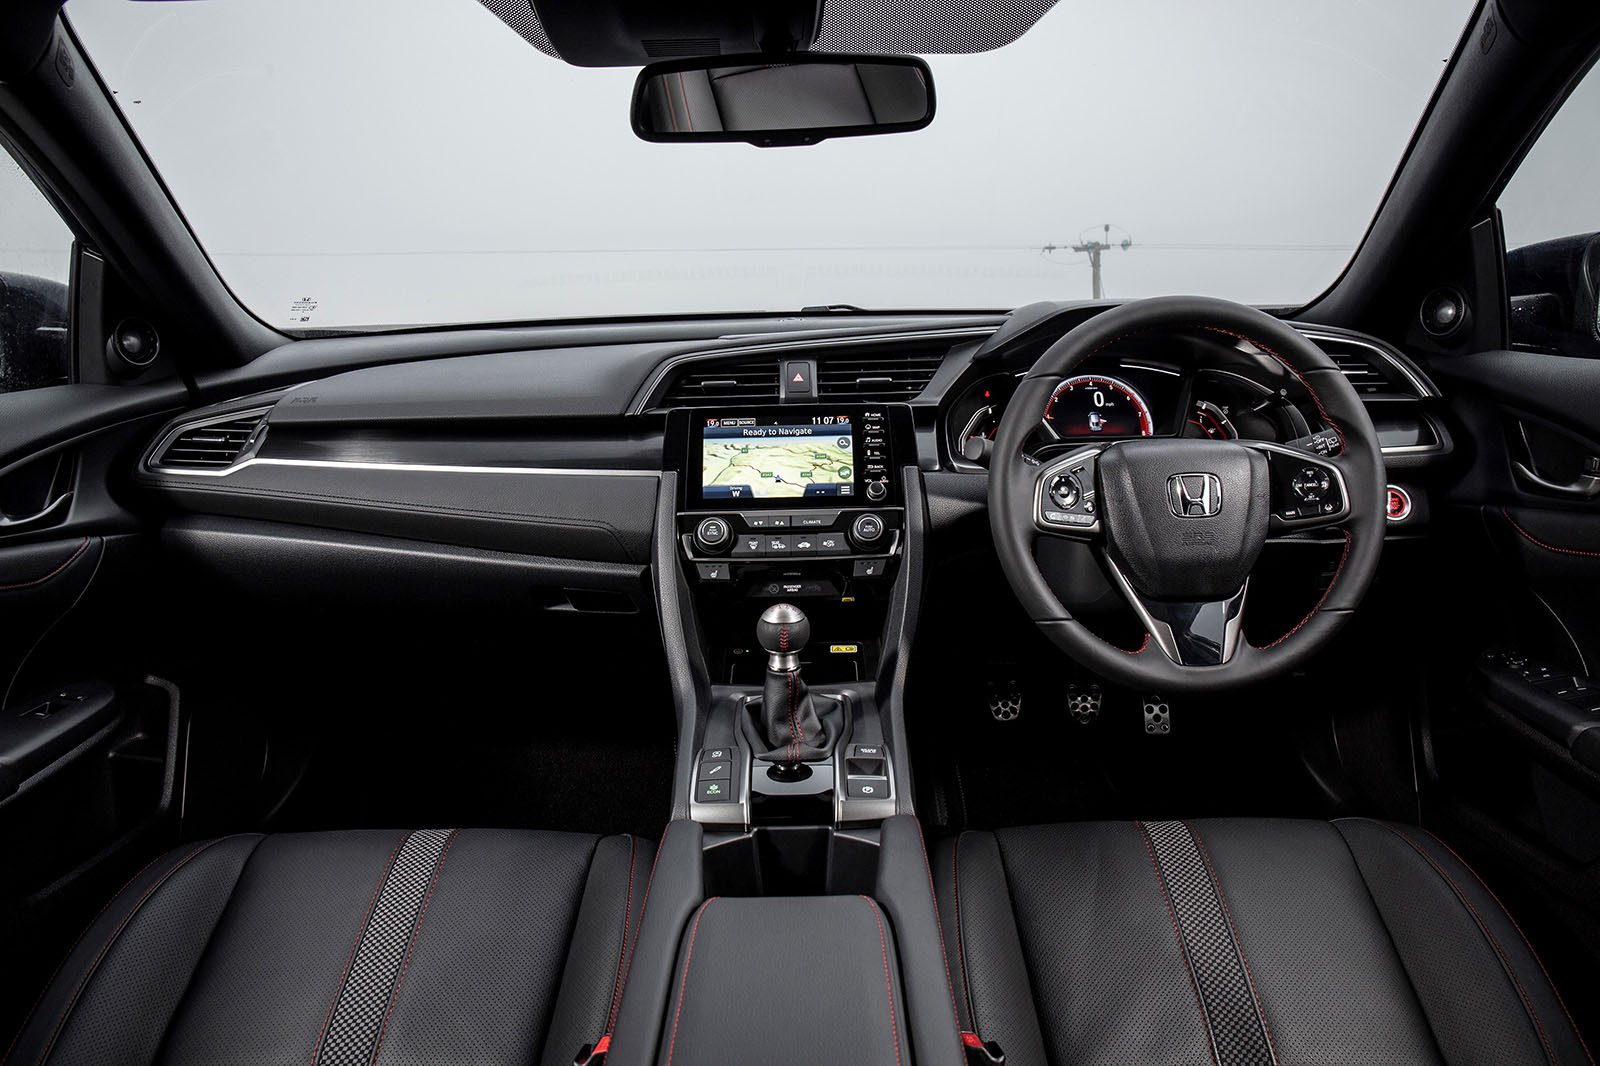 Honda Civic Hatchback 2019 dashboard RHD